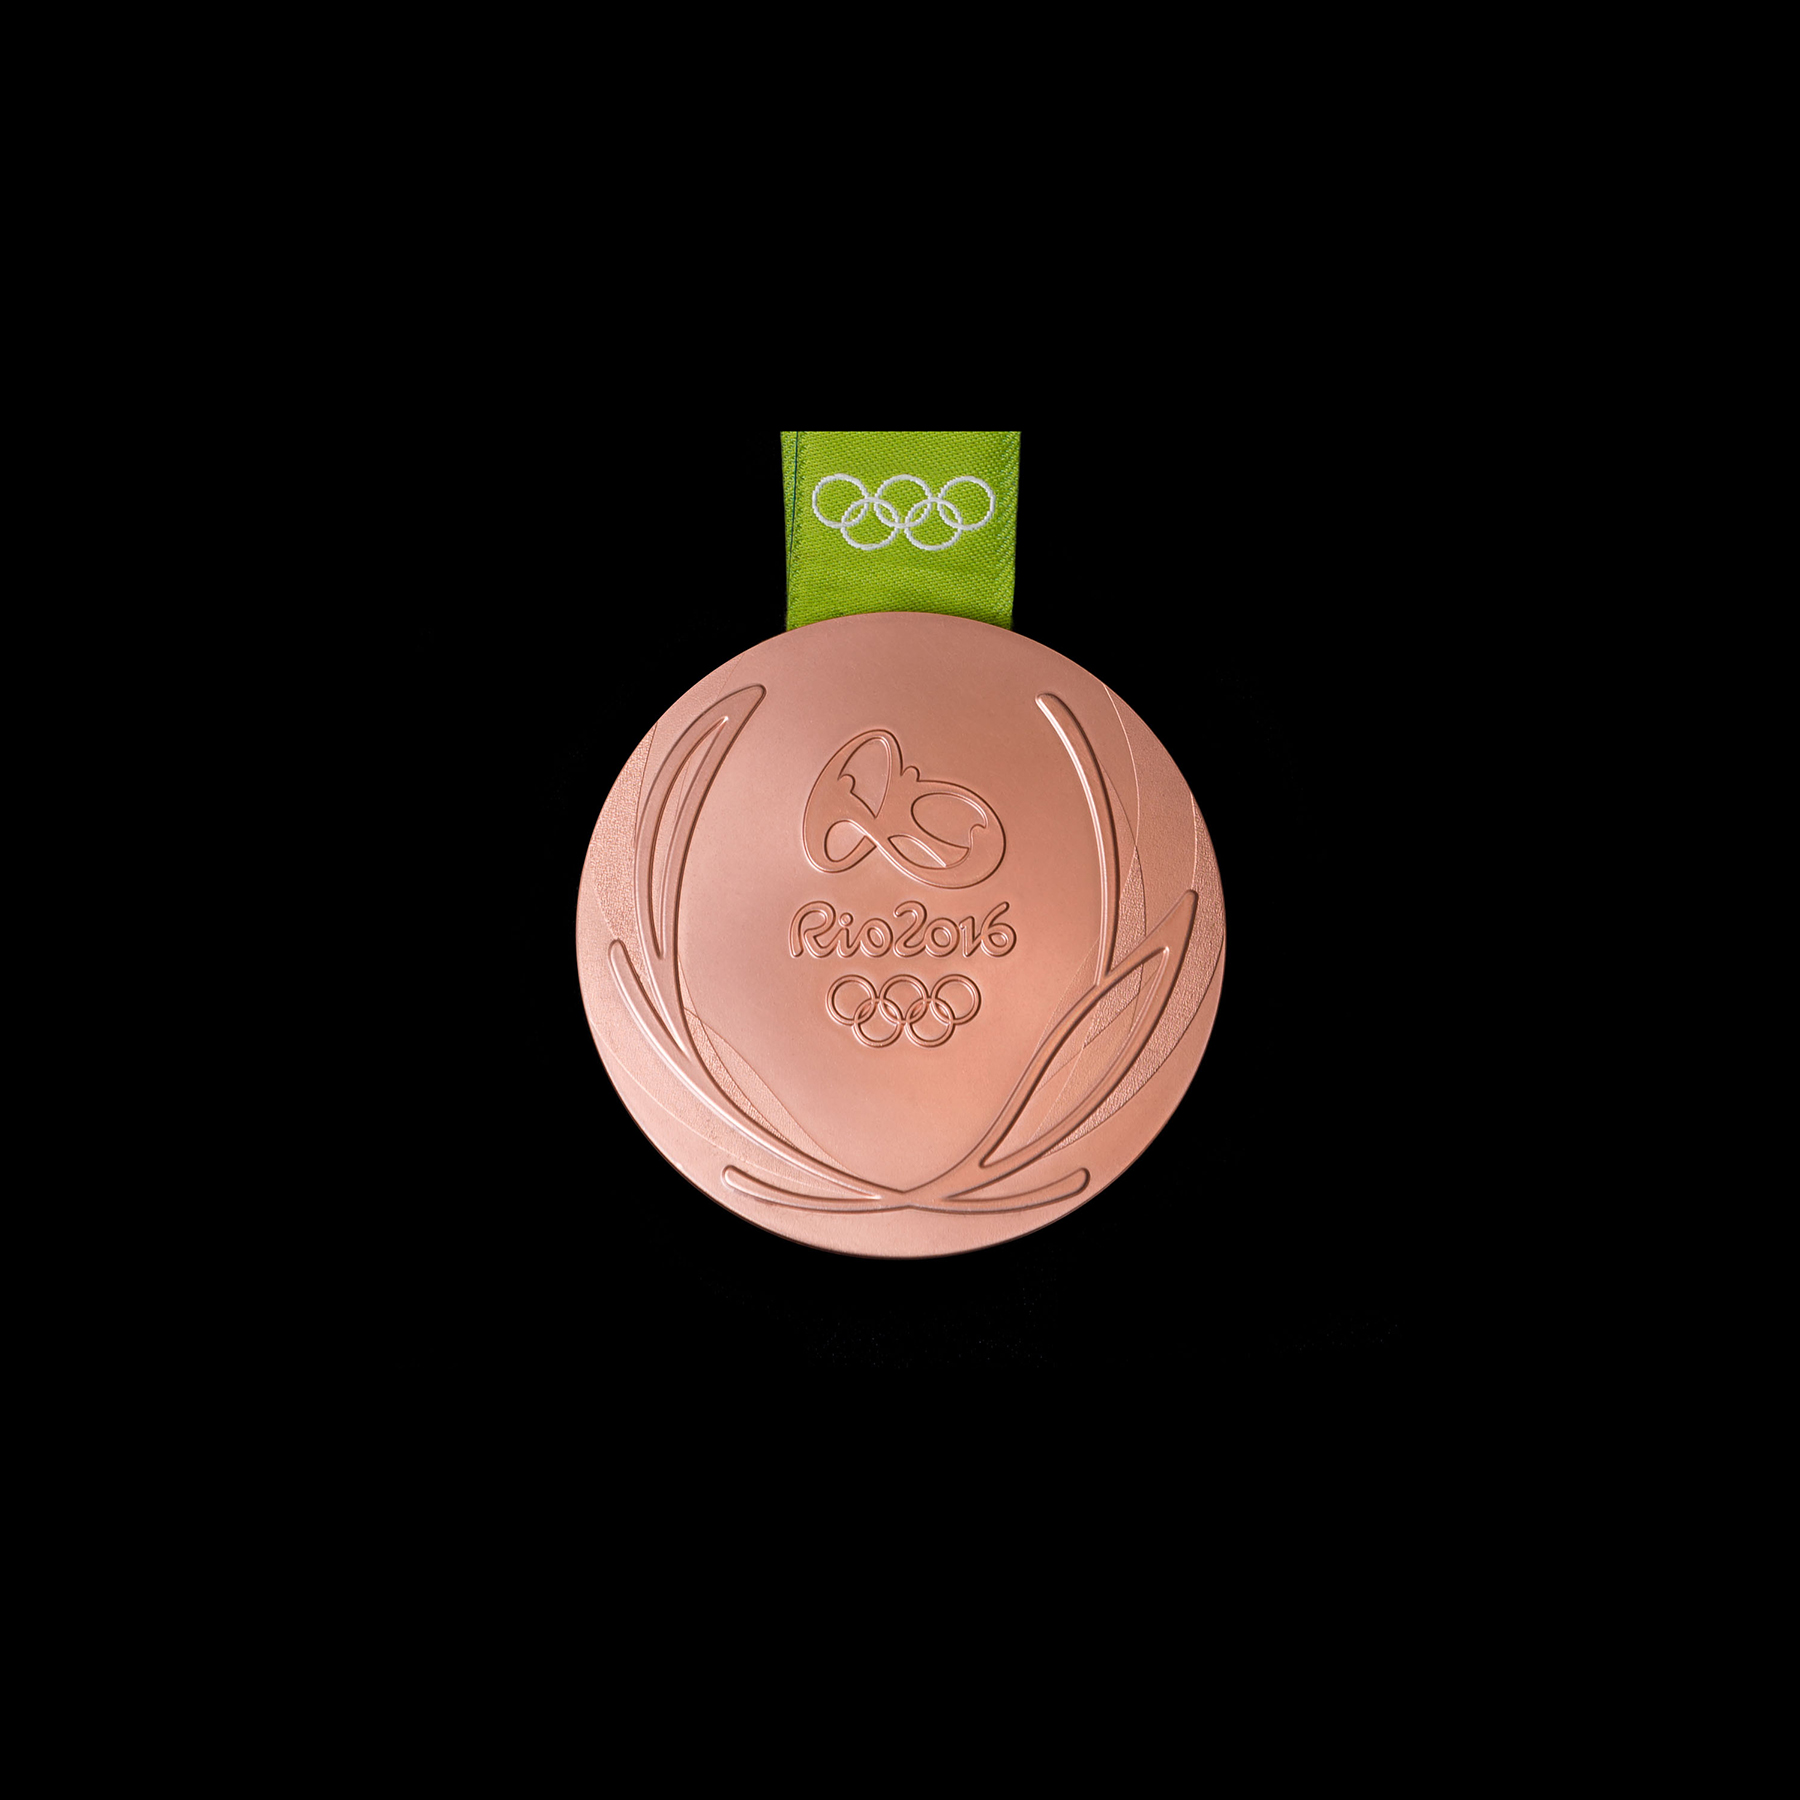 olympic-bronze-medal-2016